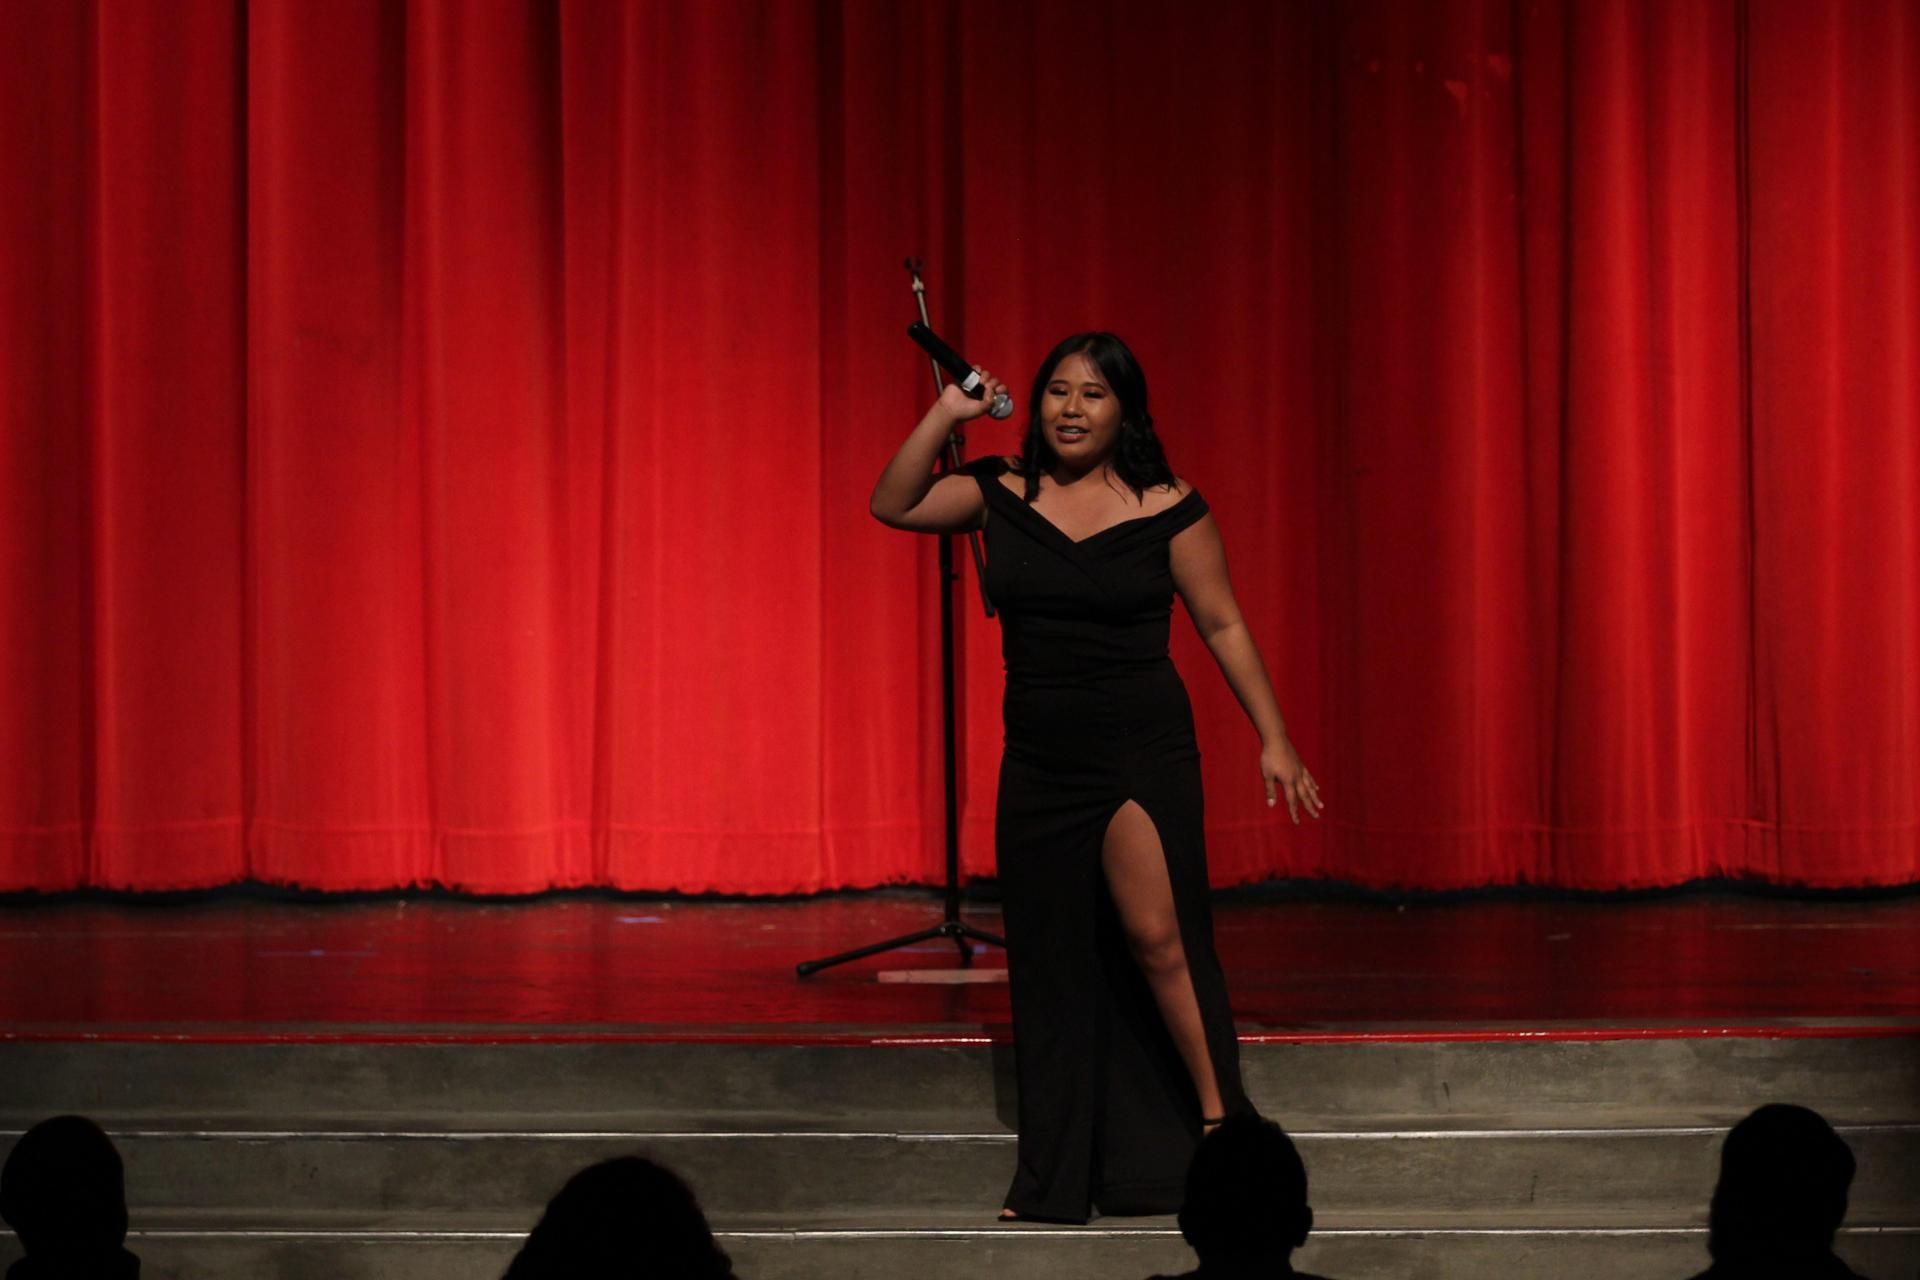 Bianca Solidum singing at the talent show